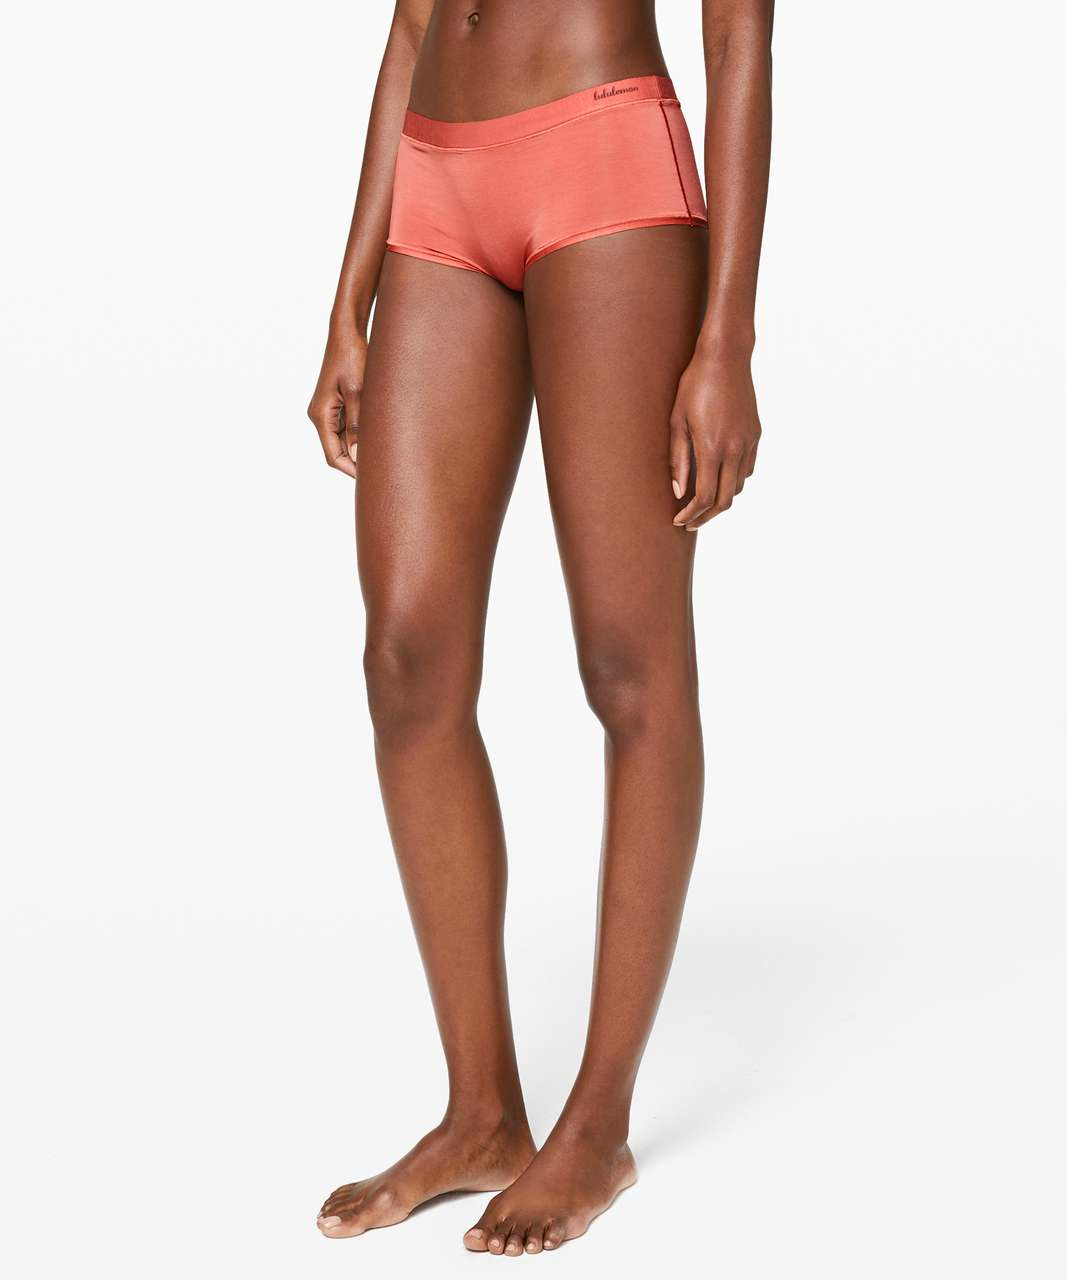 Lululemon Simply There Boyshort - Rustic Coral